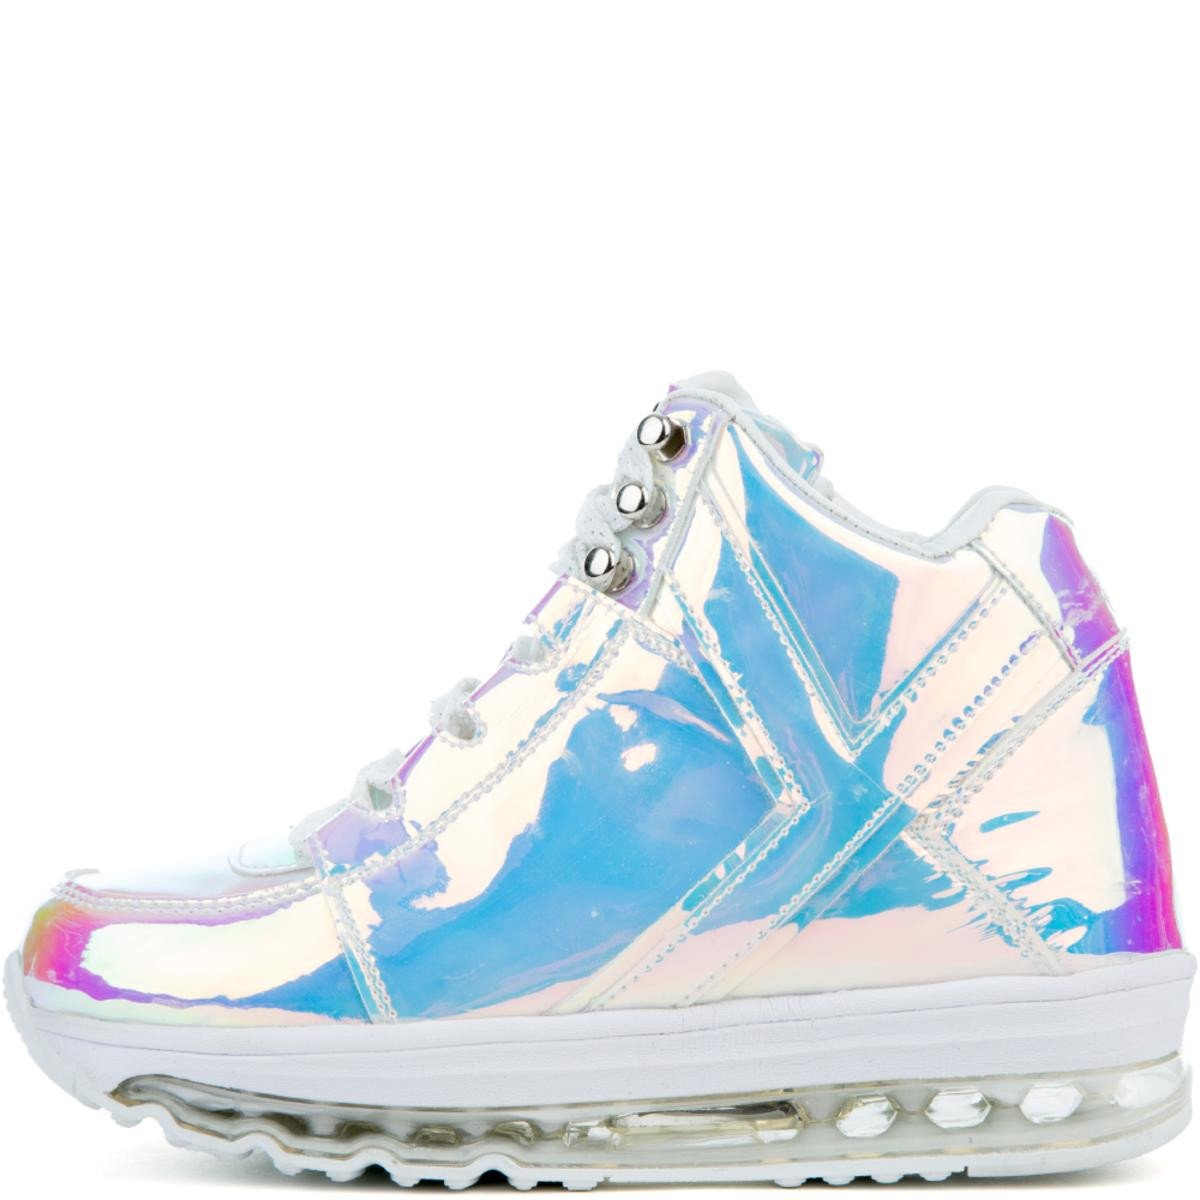 Women's Qozmo Aiire Atlantis Sneaker in White